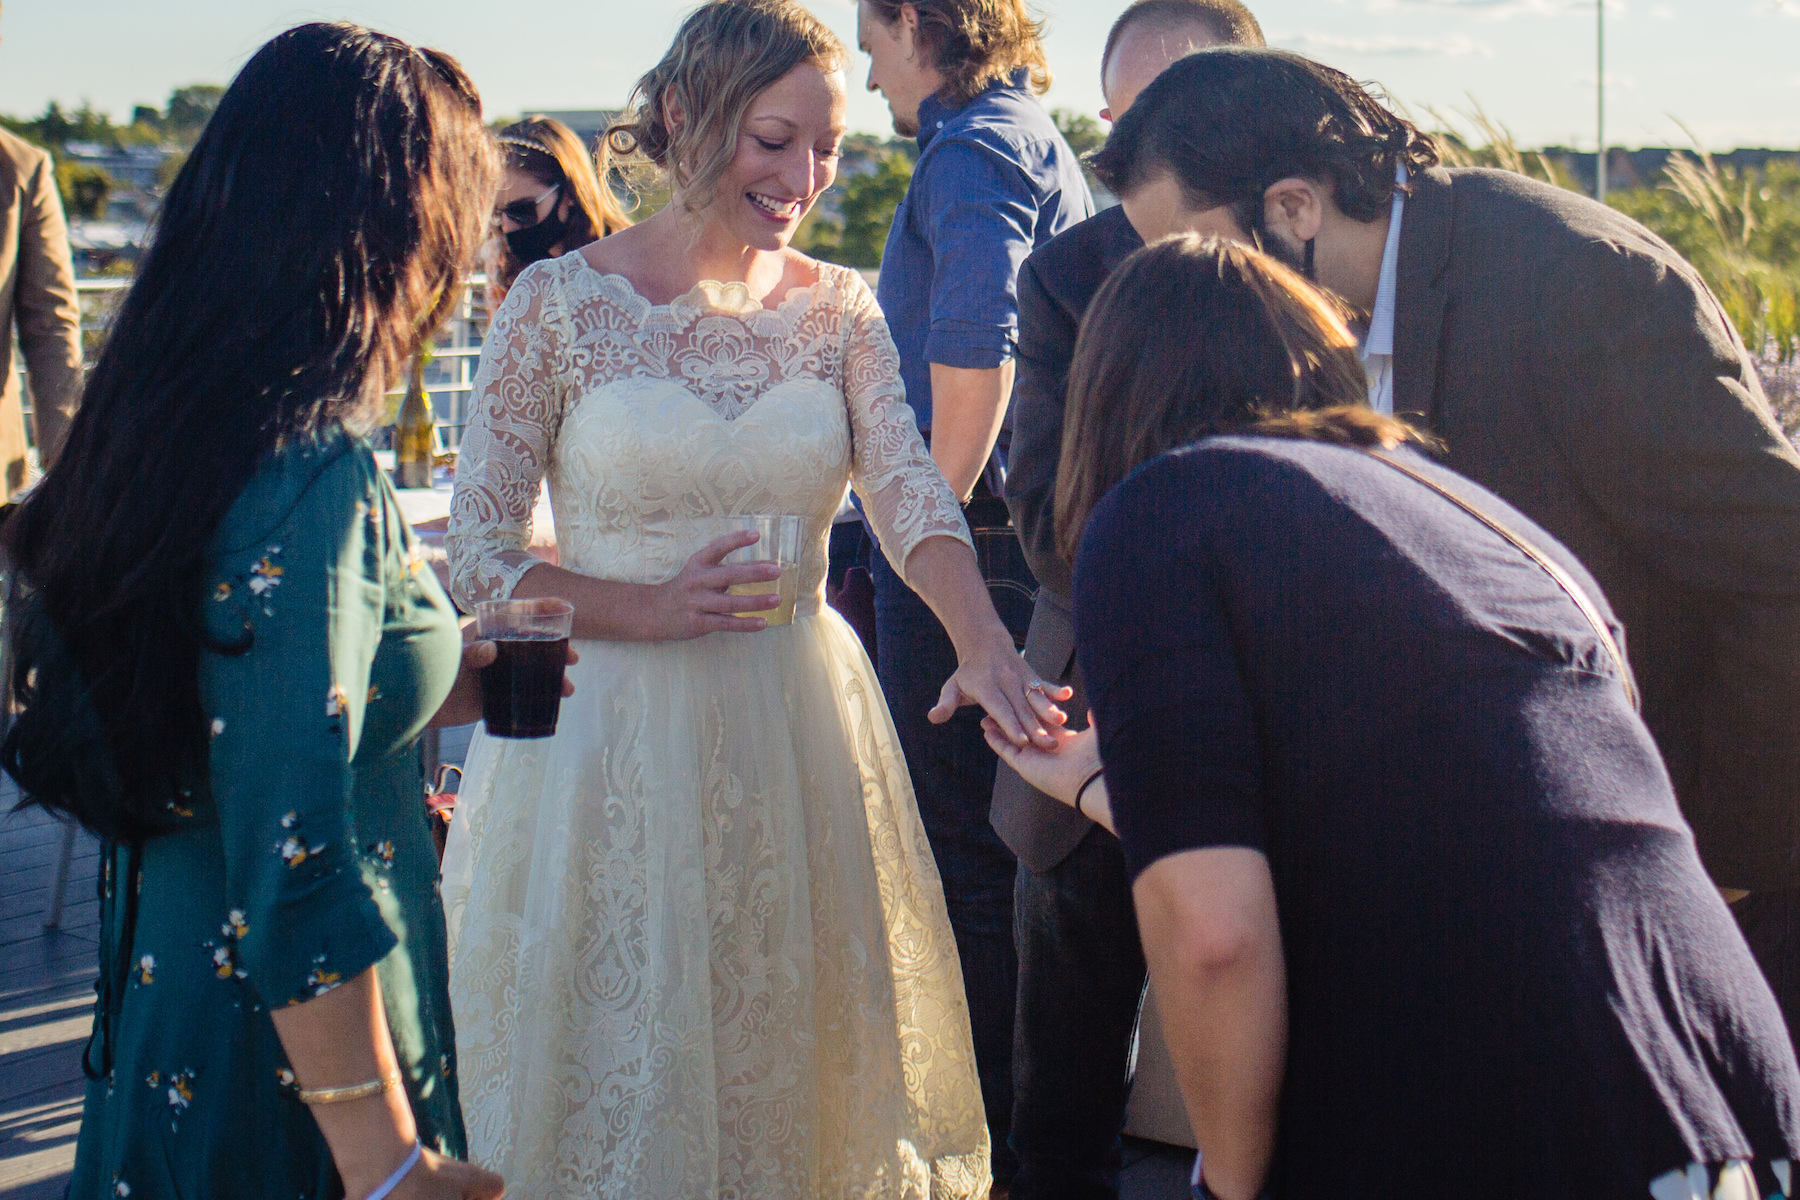 Photographer of Capitol Hill, Washington, DC Weddings | Radiating with joy and beauty, the bride shows off her wedding ring